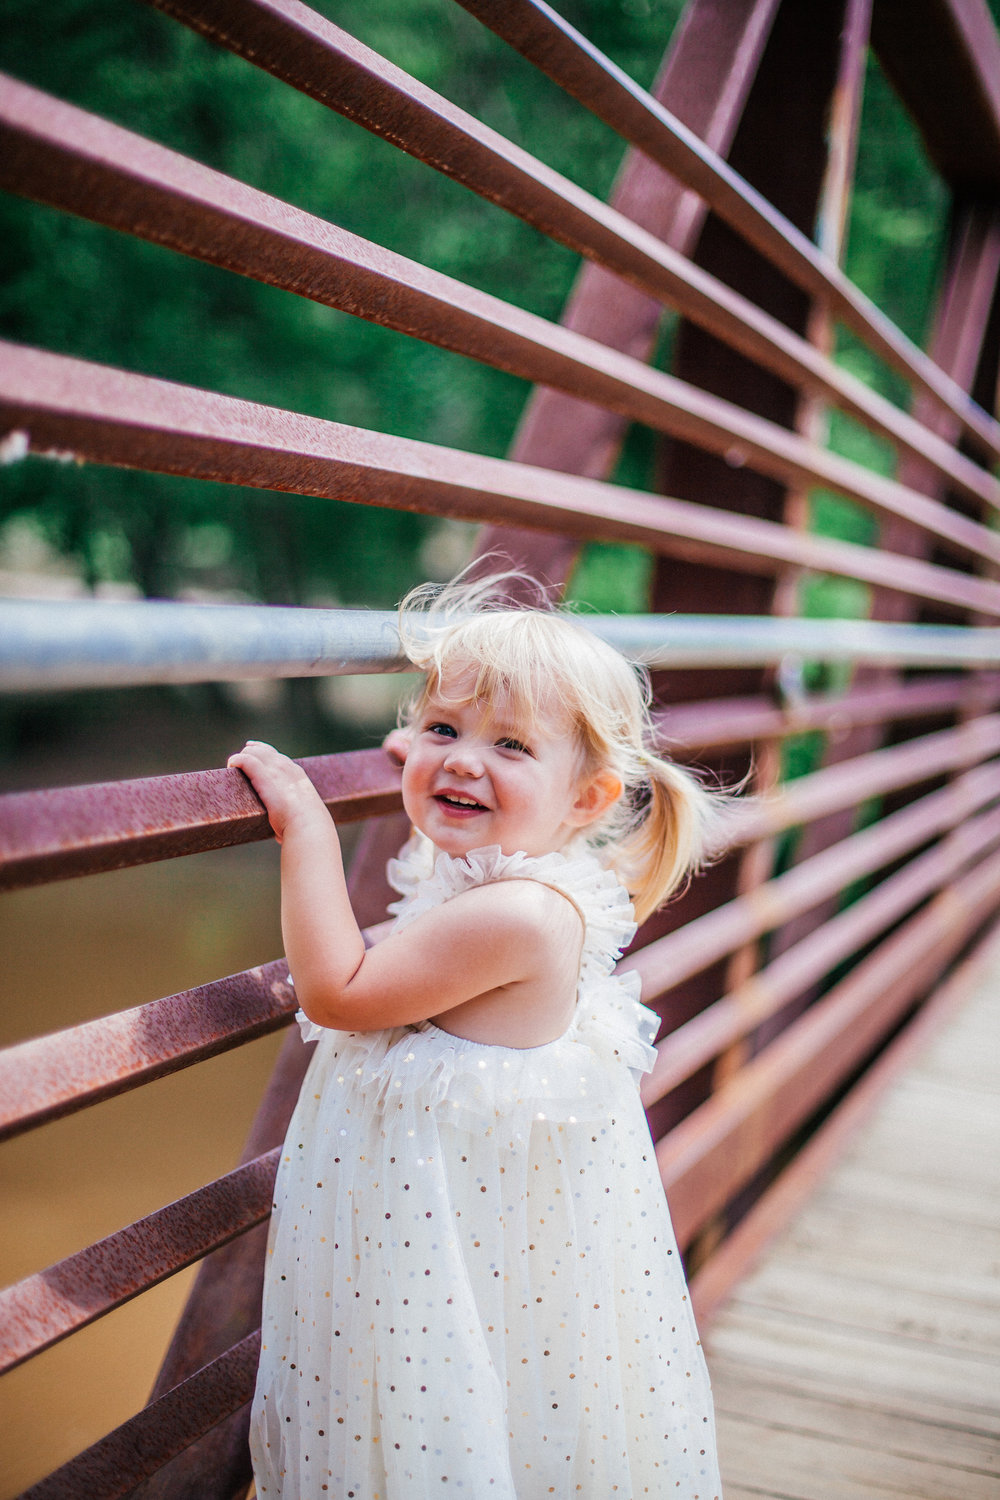 rope-mill-park-woodstock-family-photographer-angela-elliott-wingard-two-year-old-photoshoot-66.jpg